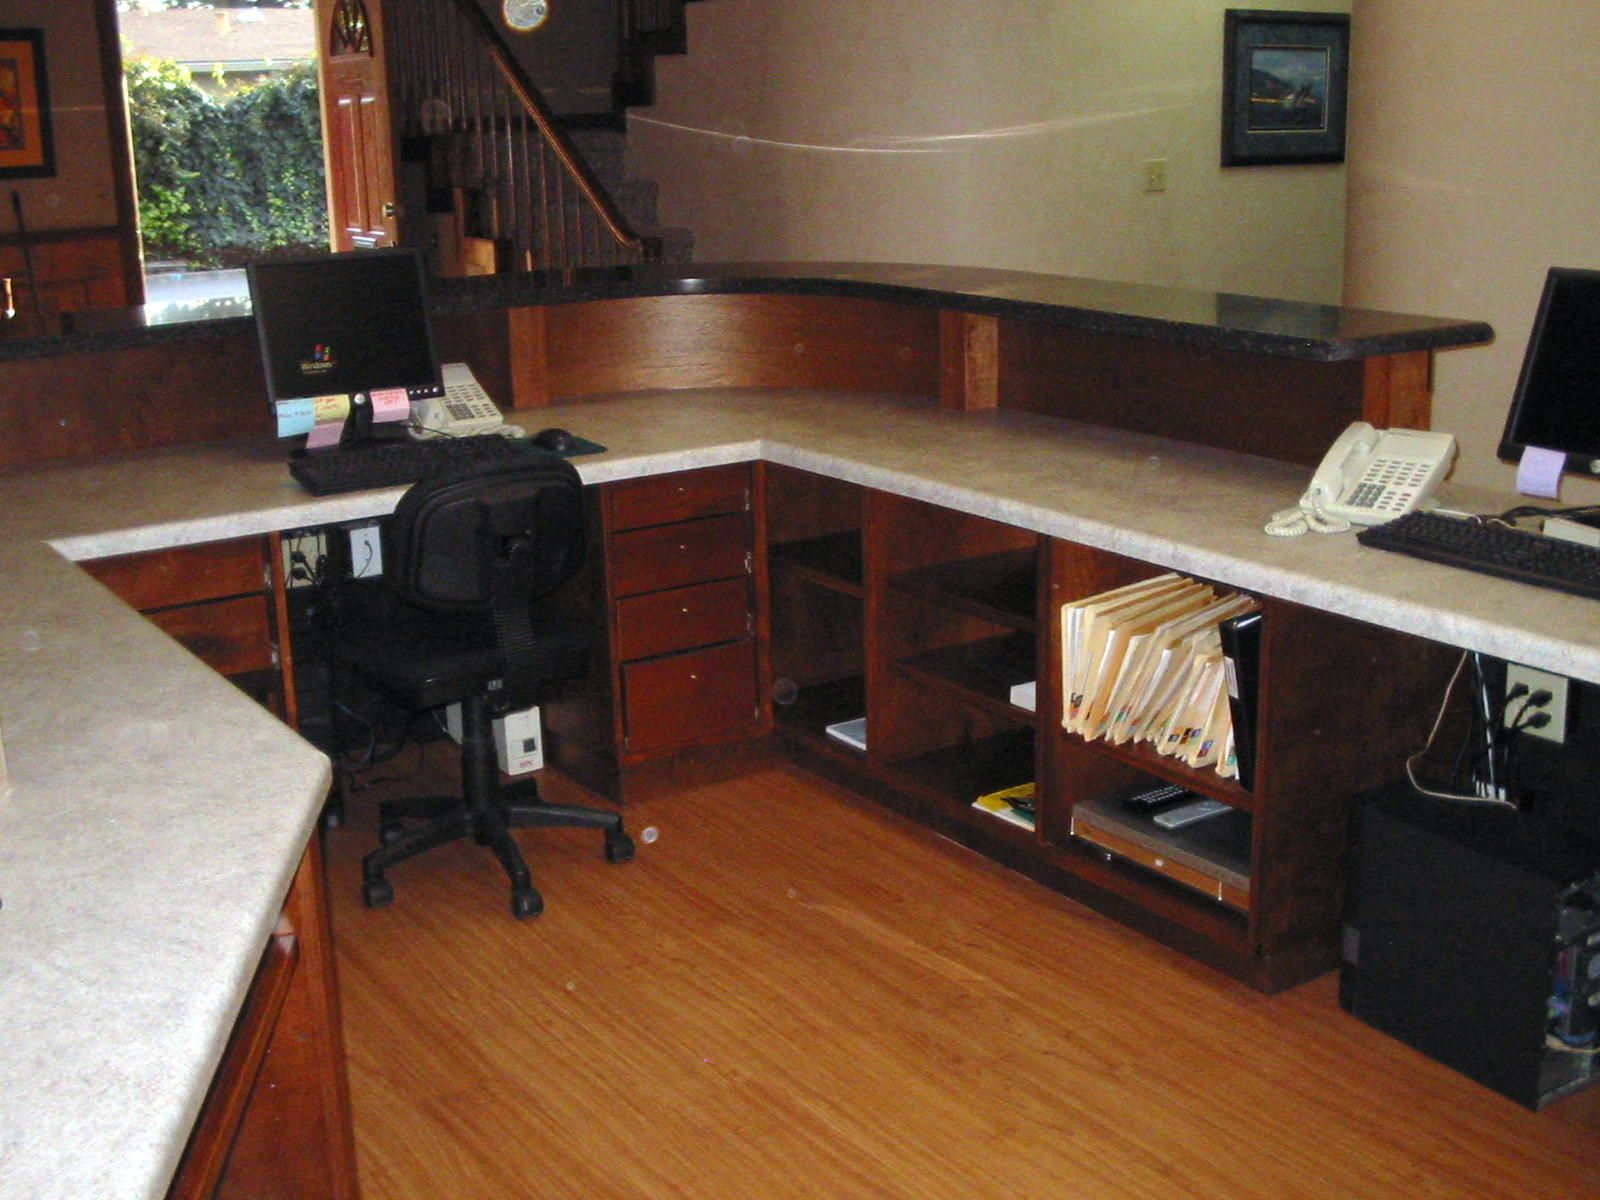 Countertop Desk : countertop desks ... laminate countertop work area elementary school ...